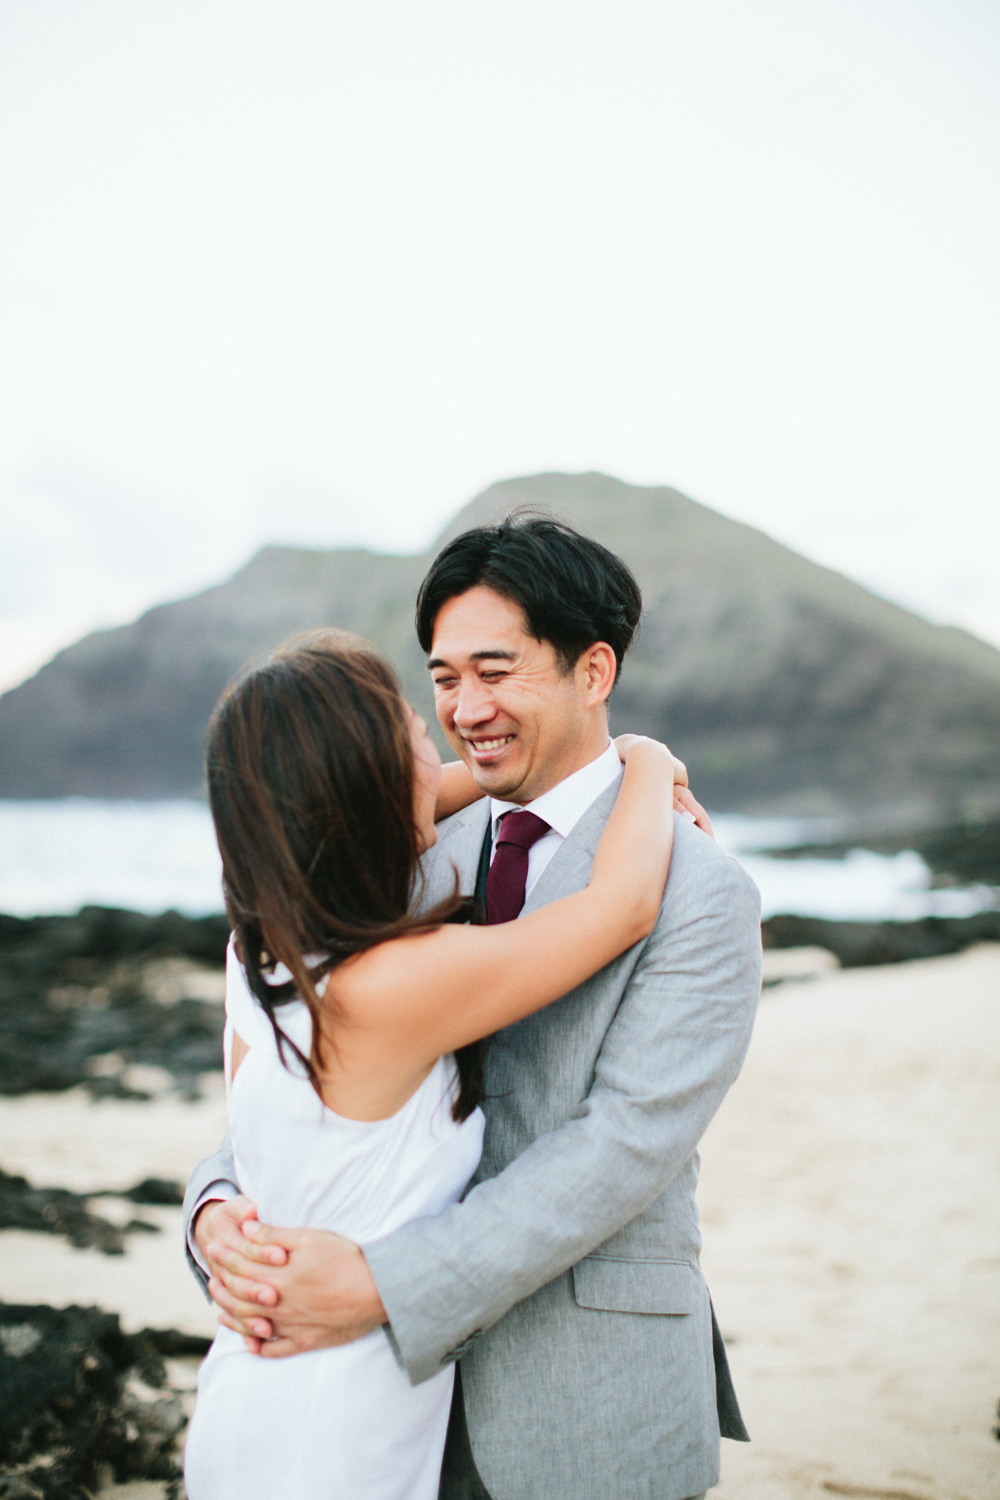 hawaiiweddingphotographer-3050.jpg